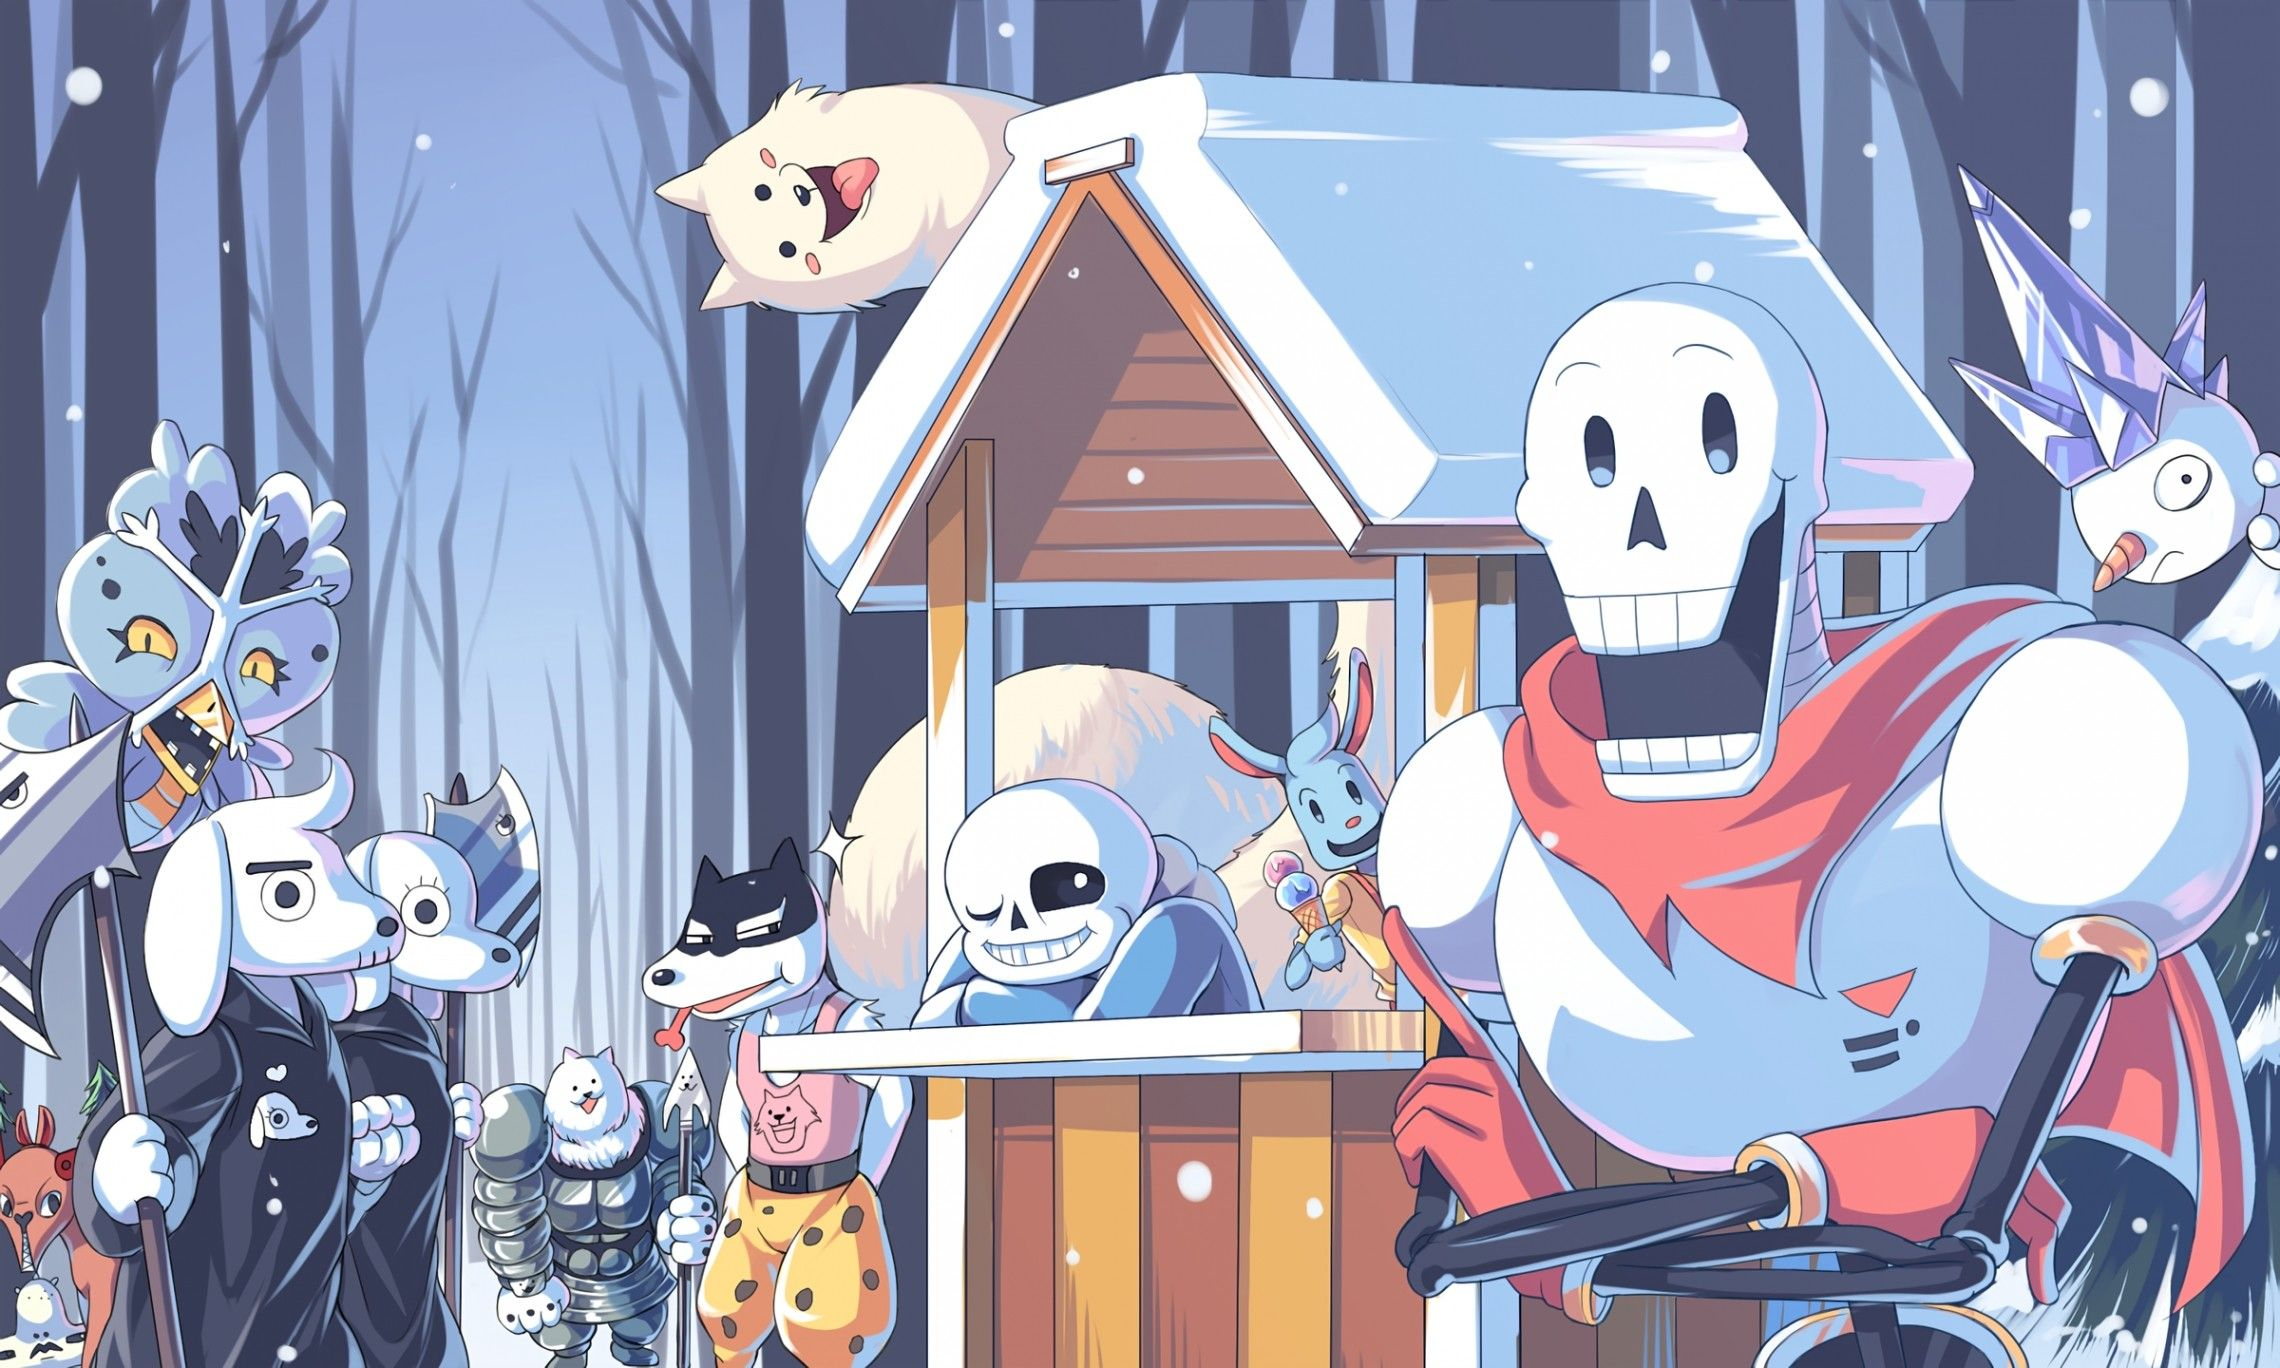 2280x1368 25 Papyrus Undertale Hd Wallpapers Backgrounds Wallpaper Abyss With Undertale Wallpaper Papyrus Undertale Undertale Fanart Undertale Art